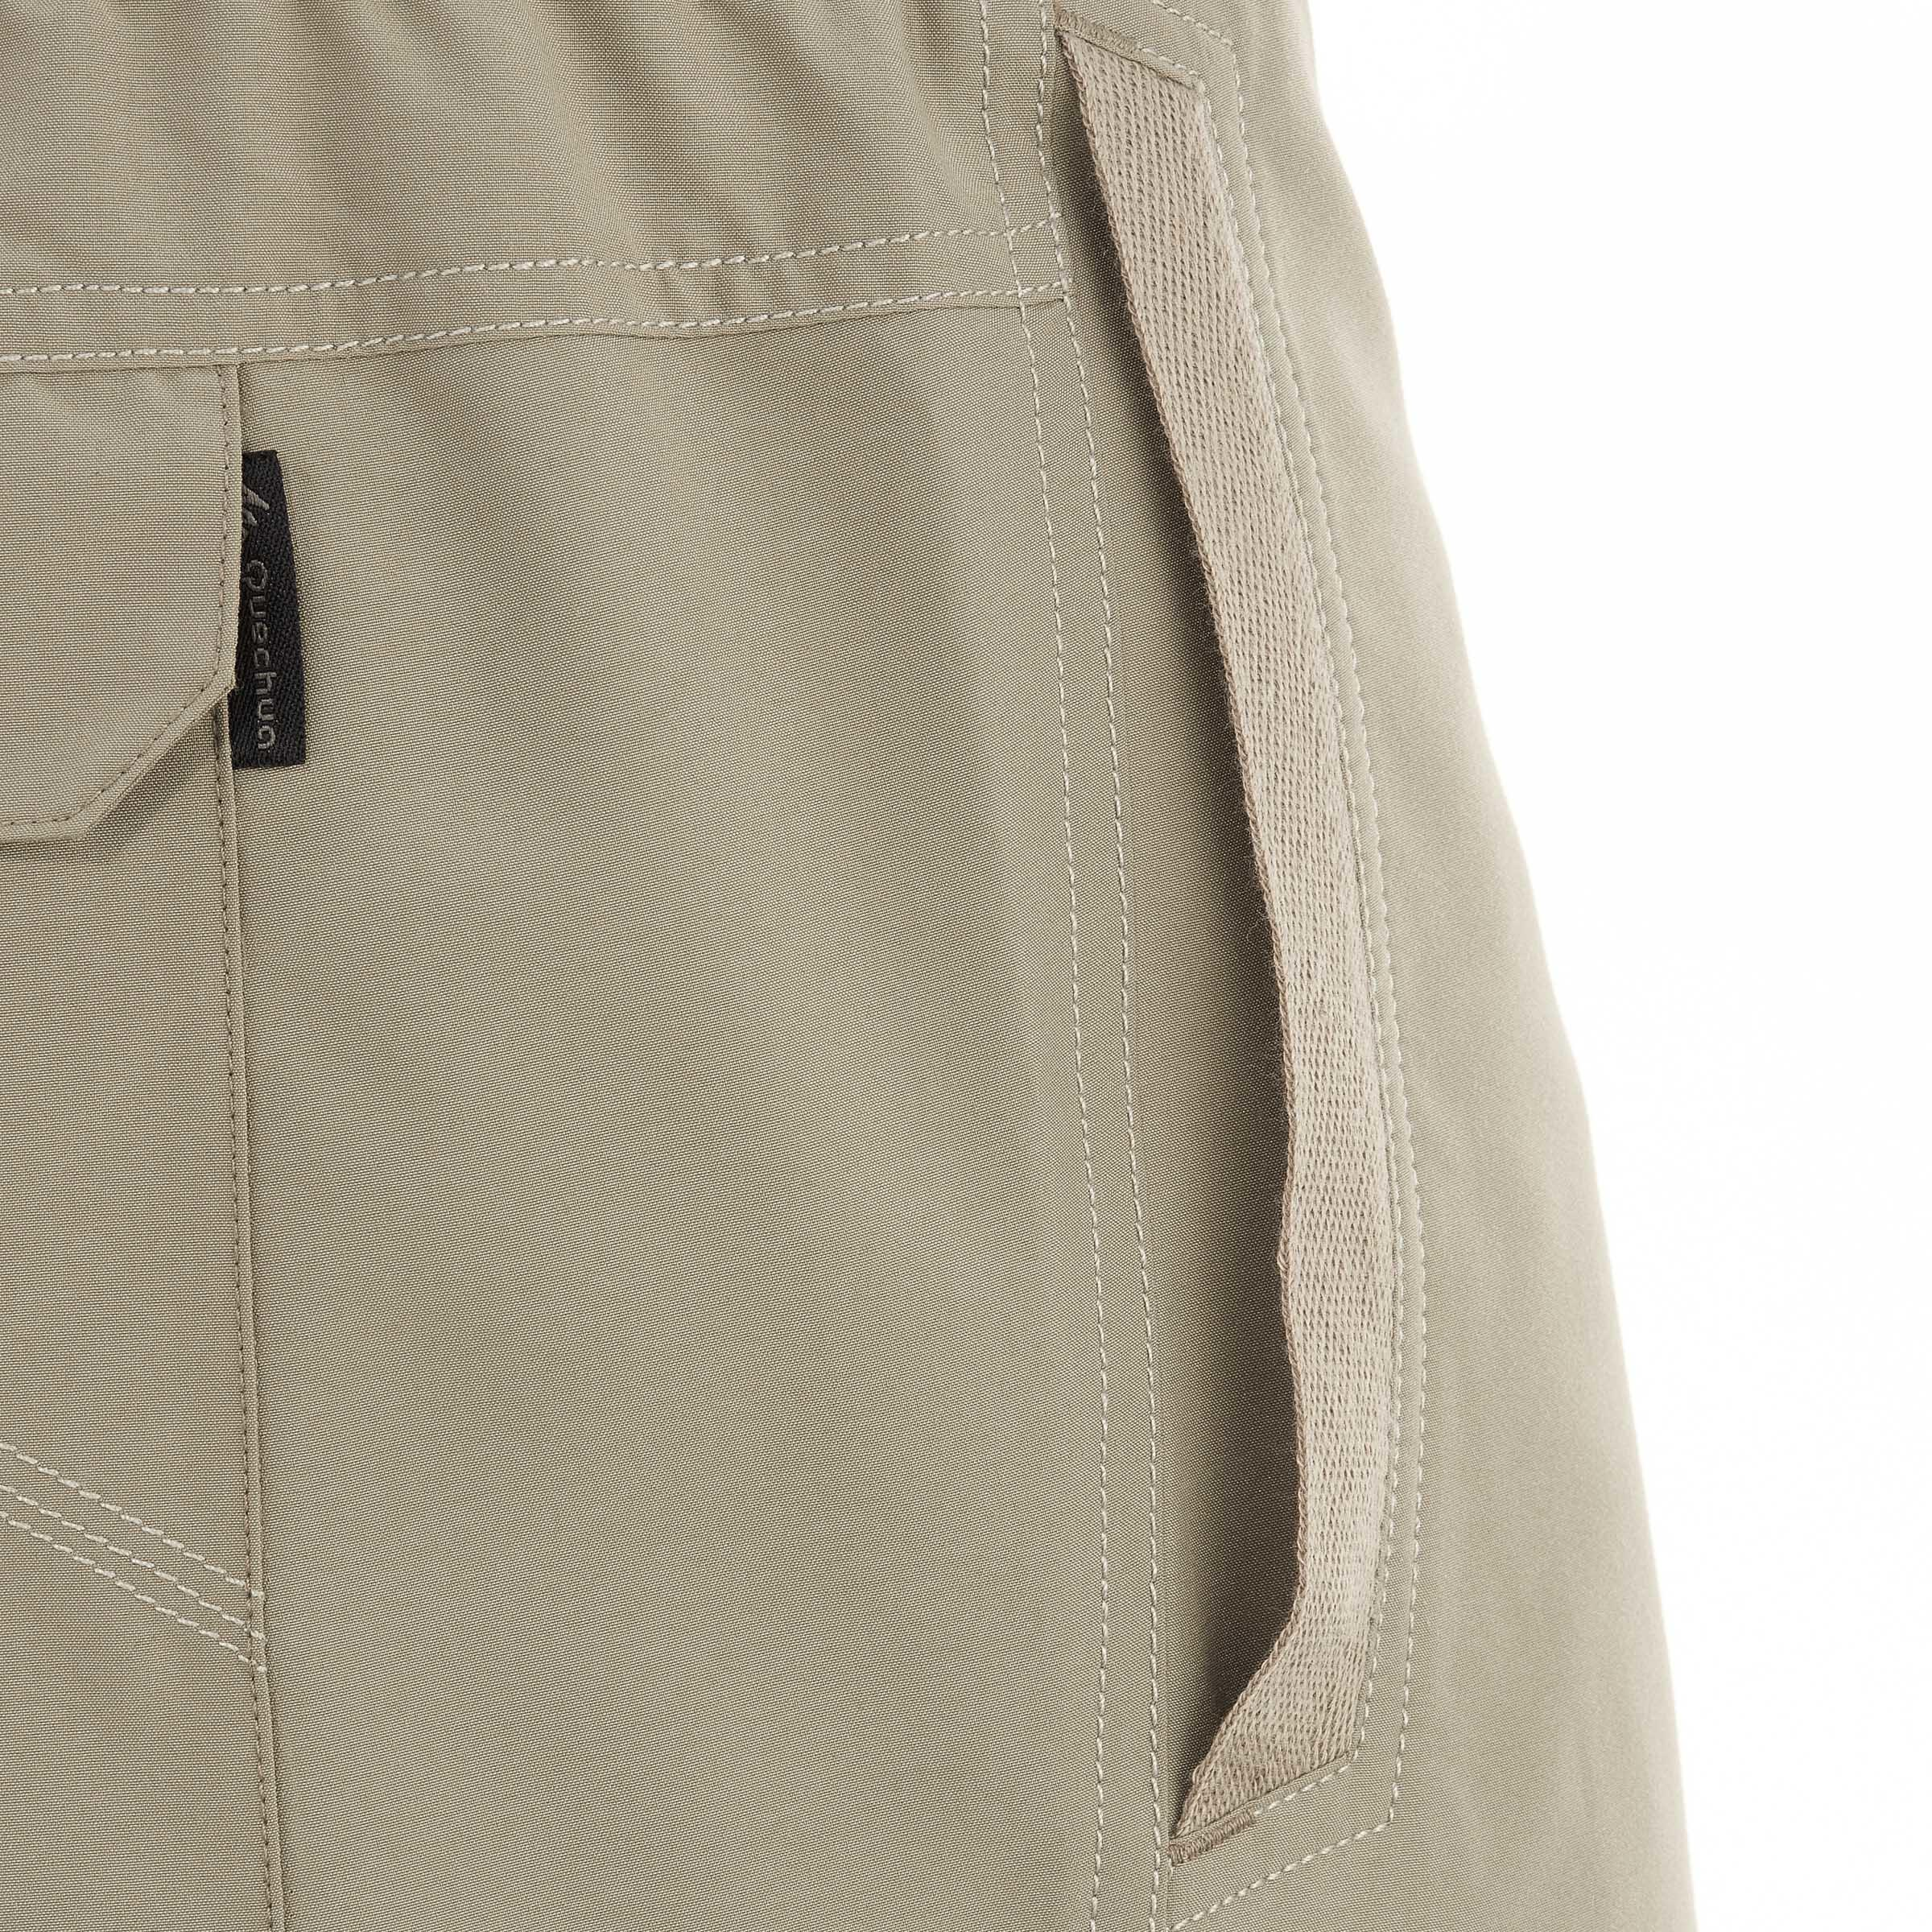 Men's Hiking Shorts NH100 - Beige